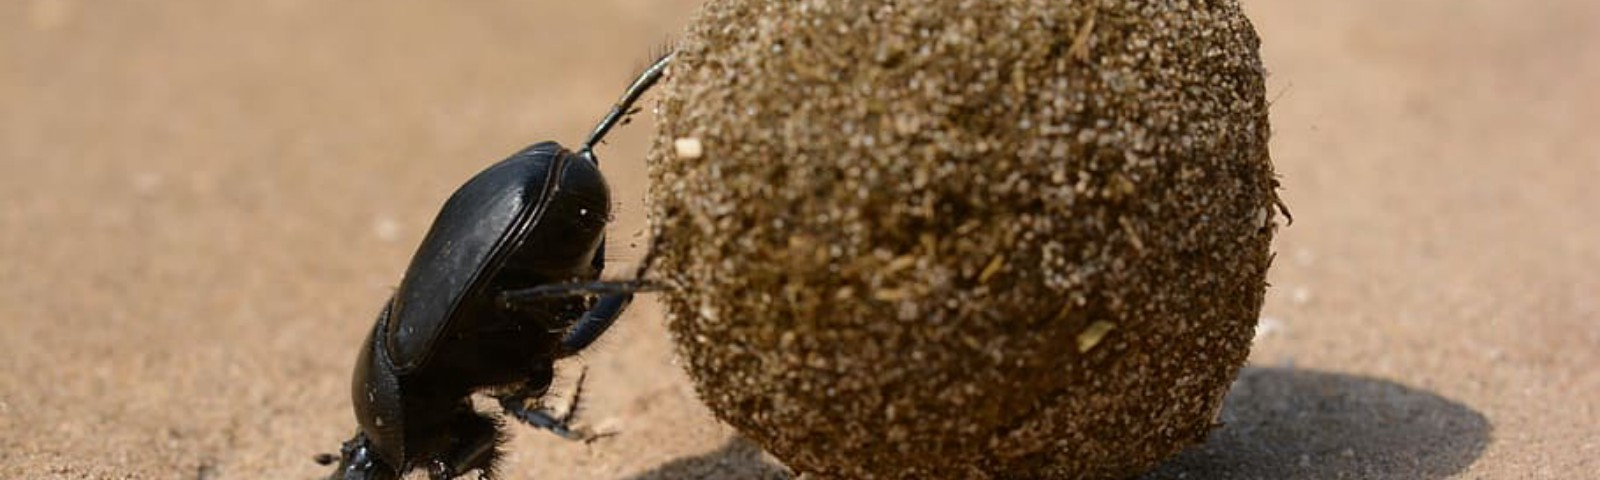 A dung beetle pushing a big ball of poo.